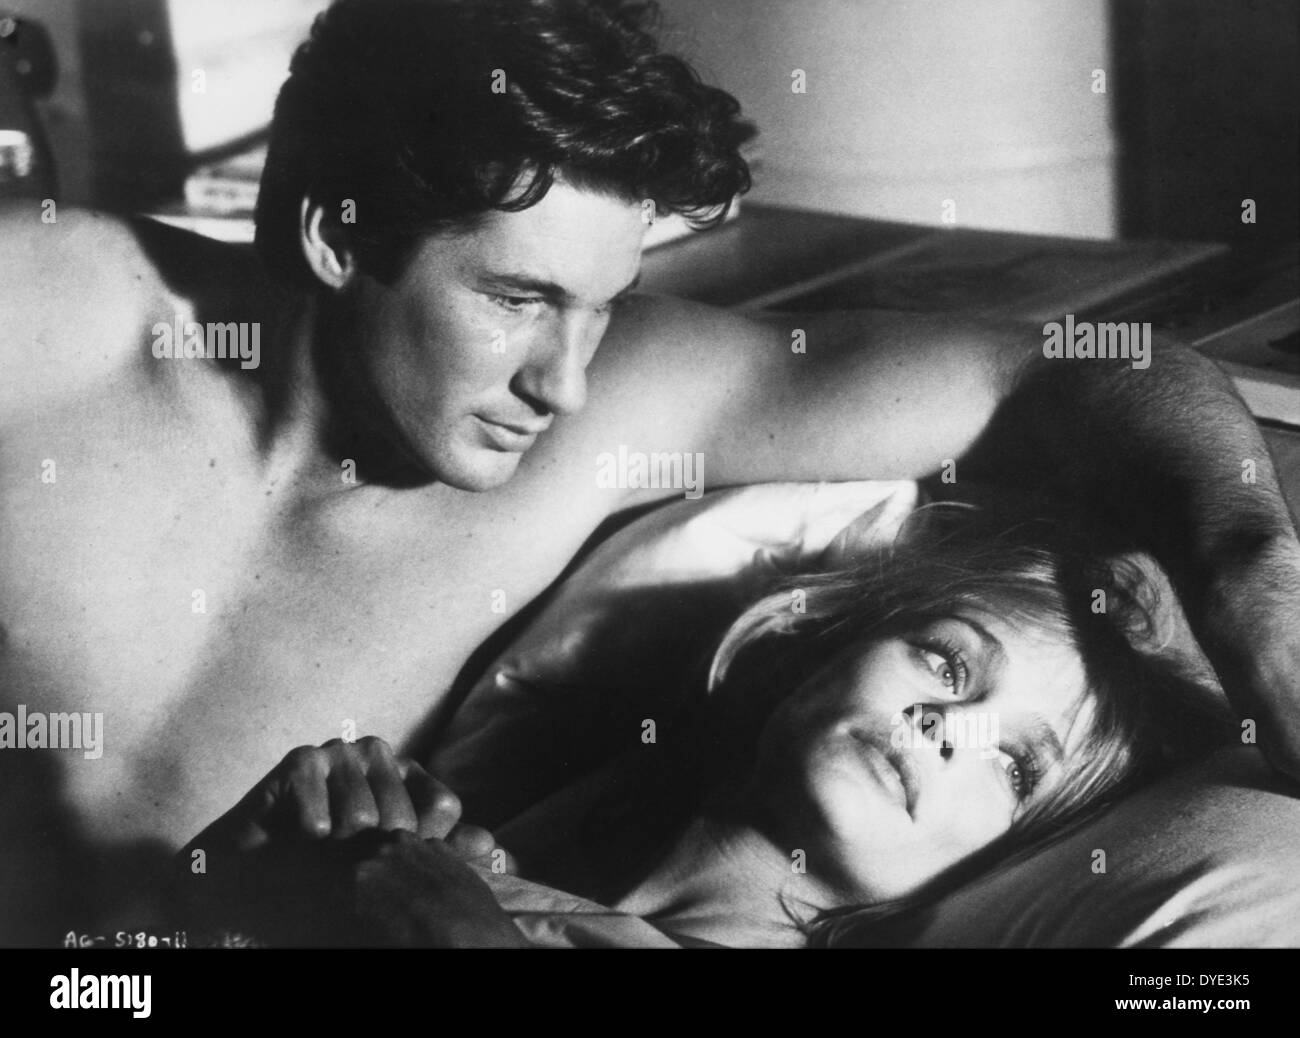 Richard Gere and Lauren Hutton, on-set of the Film, 'American Gigolo', 1980 - Stock Image